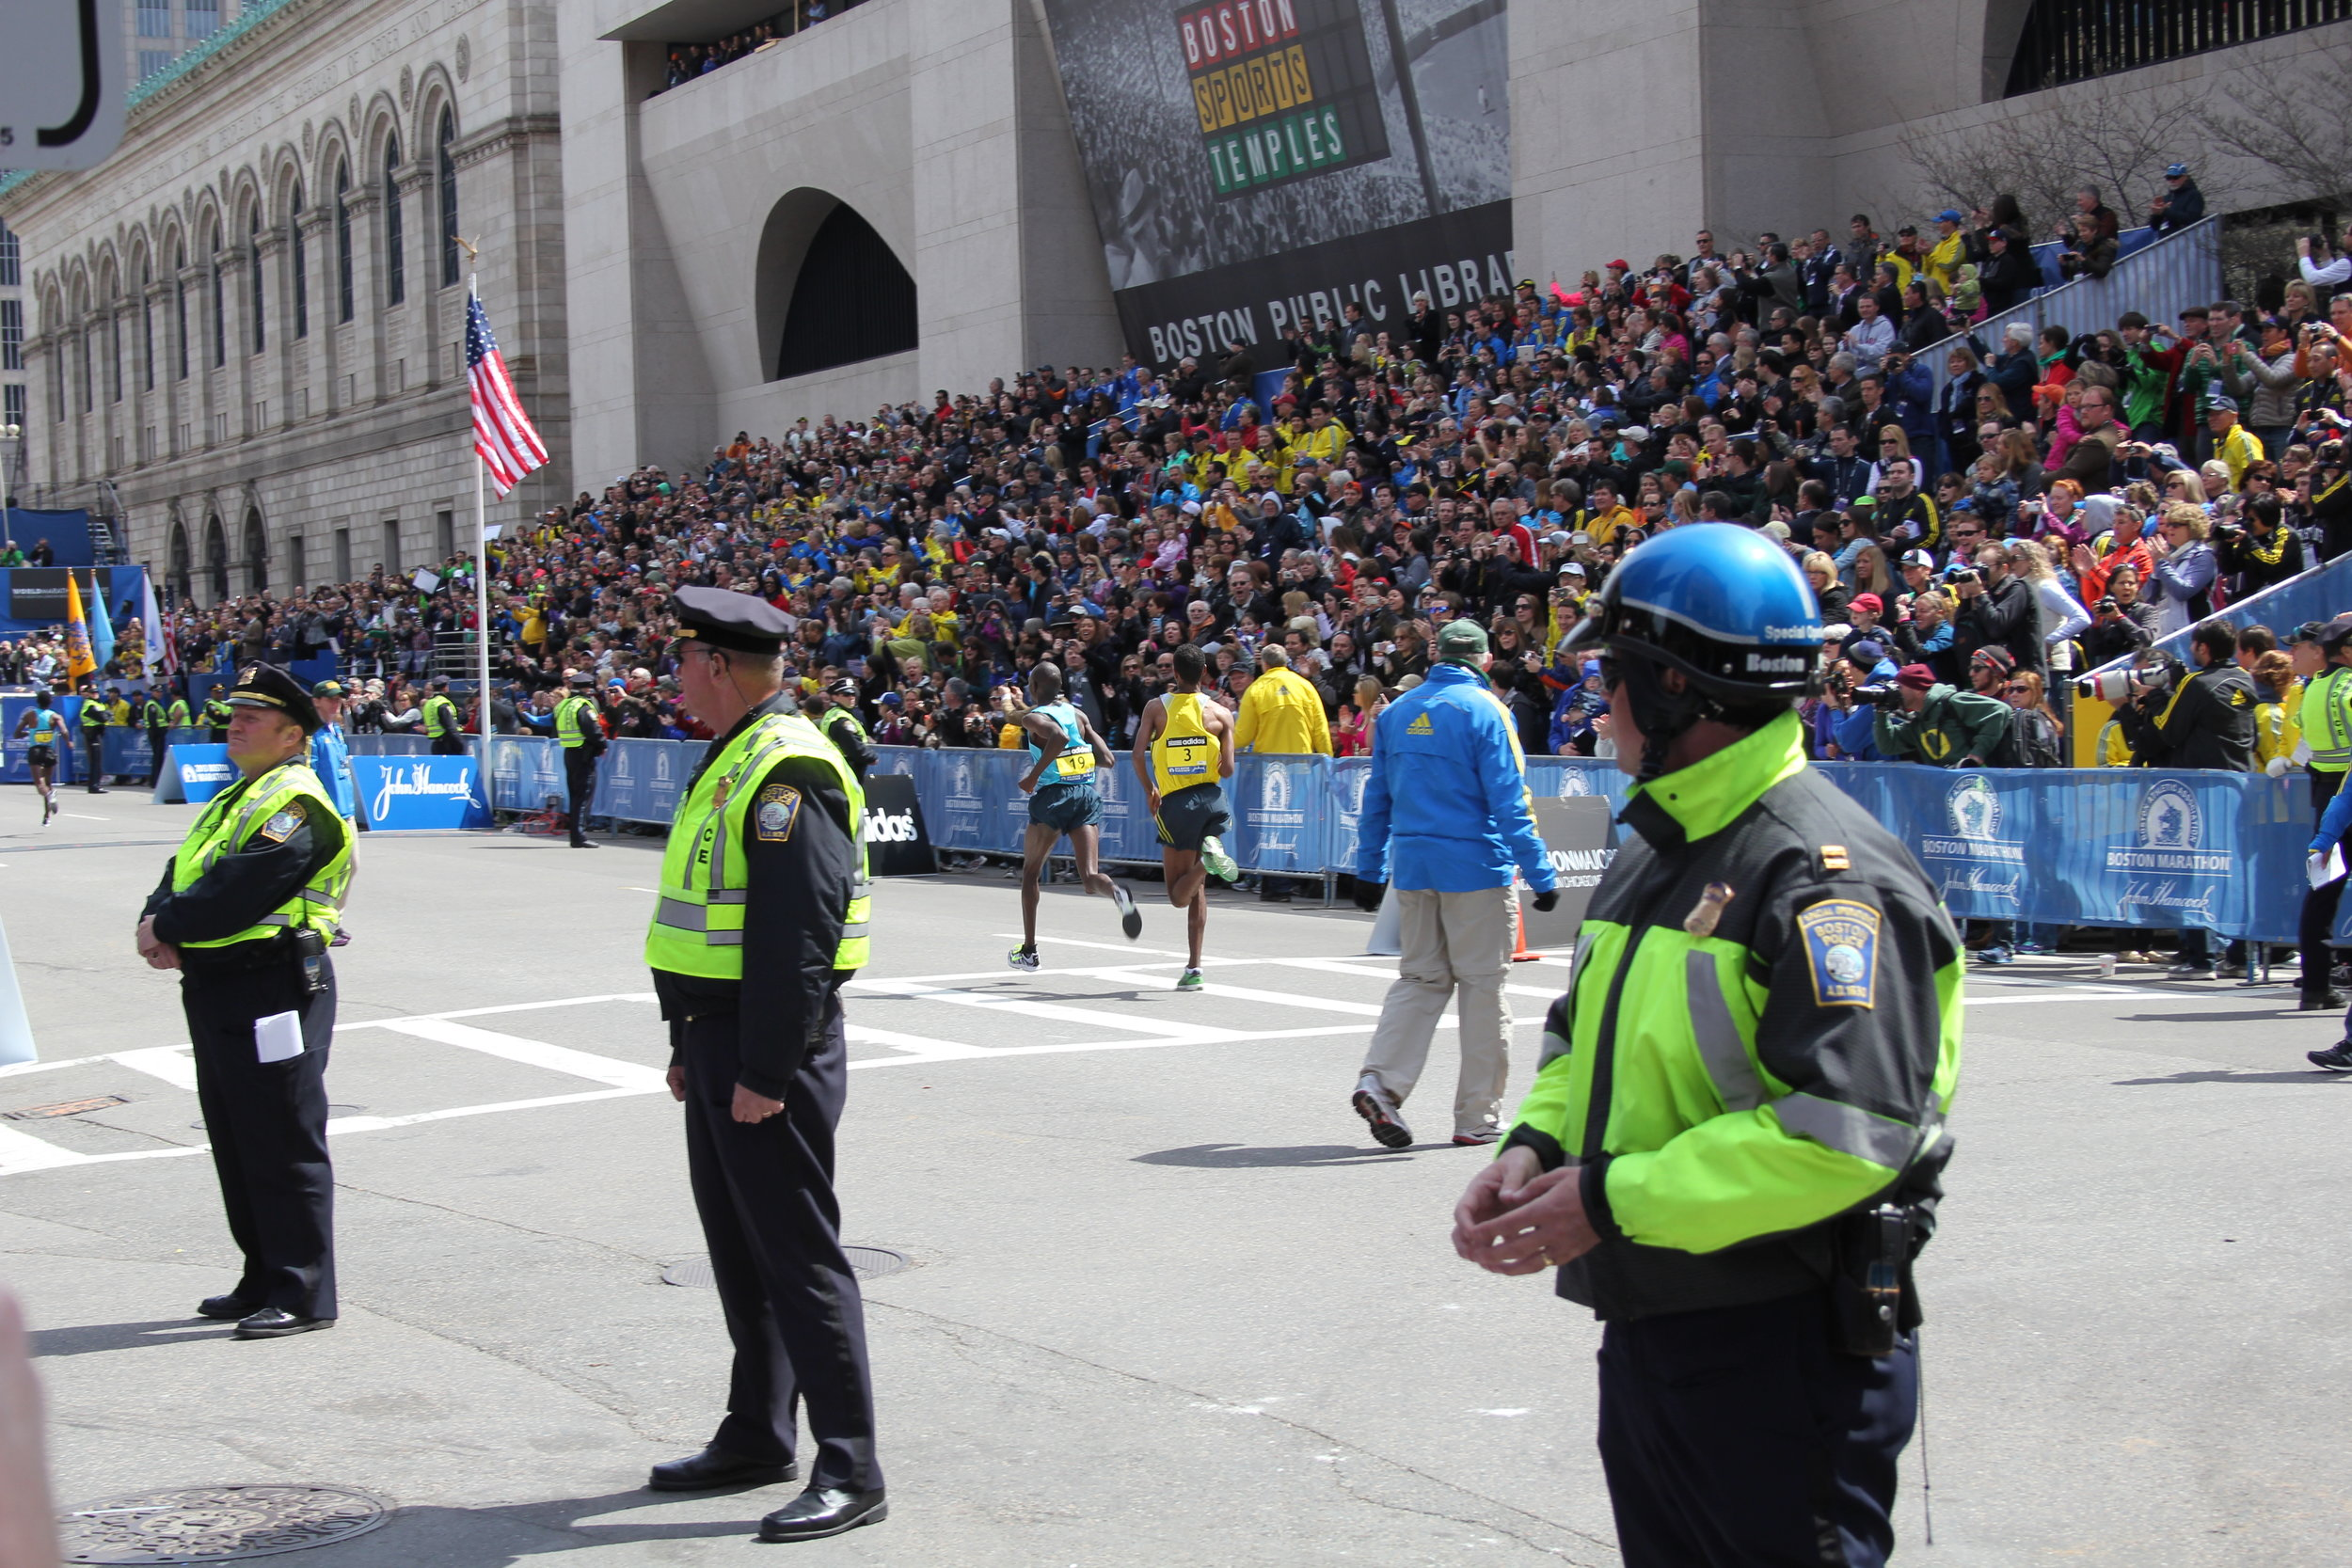 Boston's finest keeping us safe. Little did they know just how difficult their job would become that day